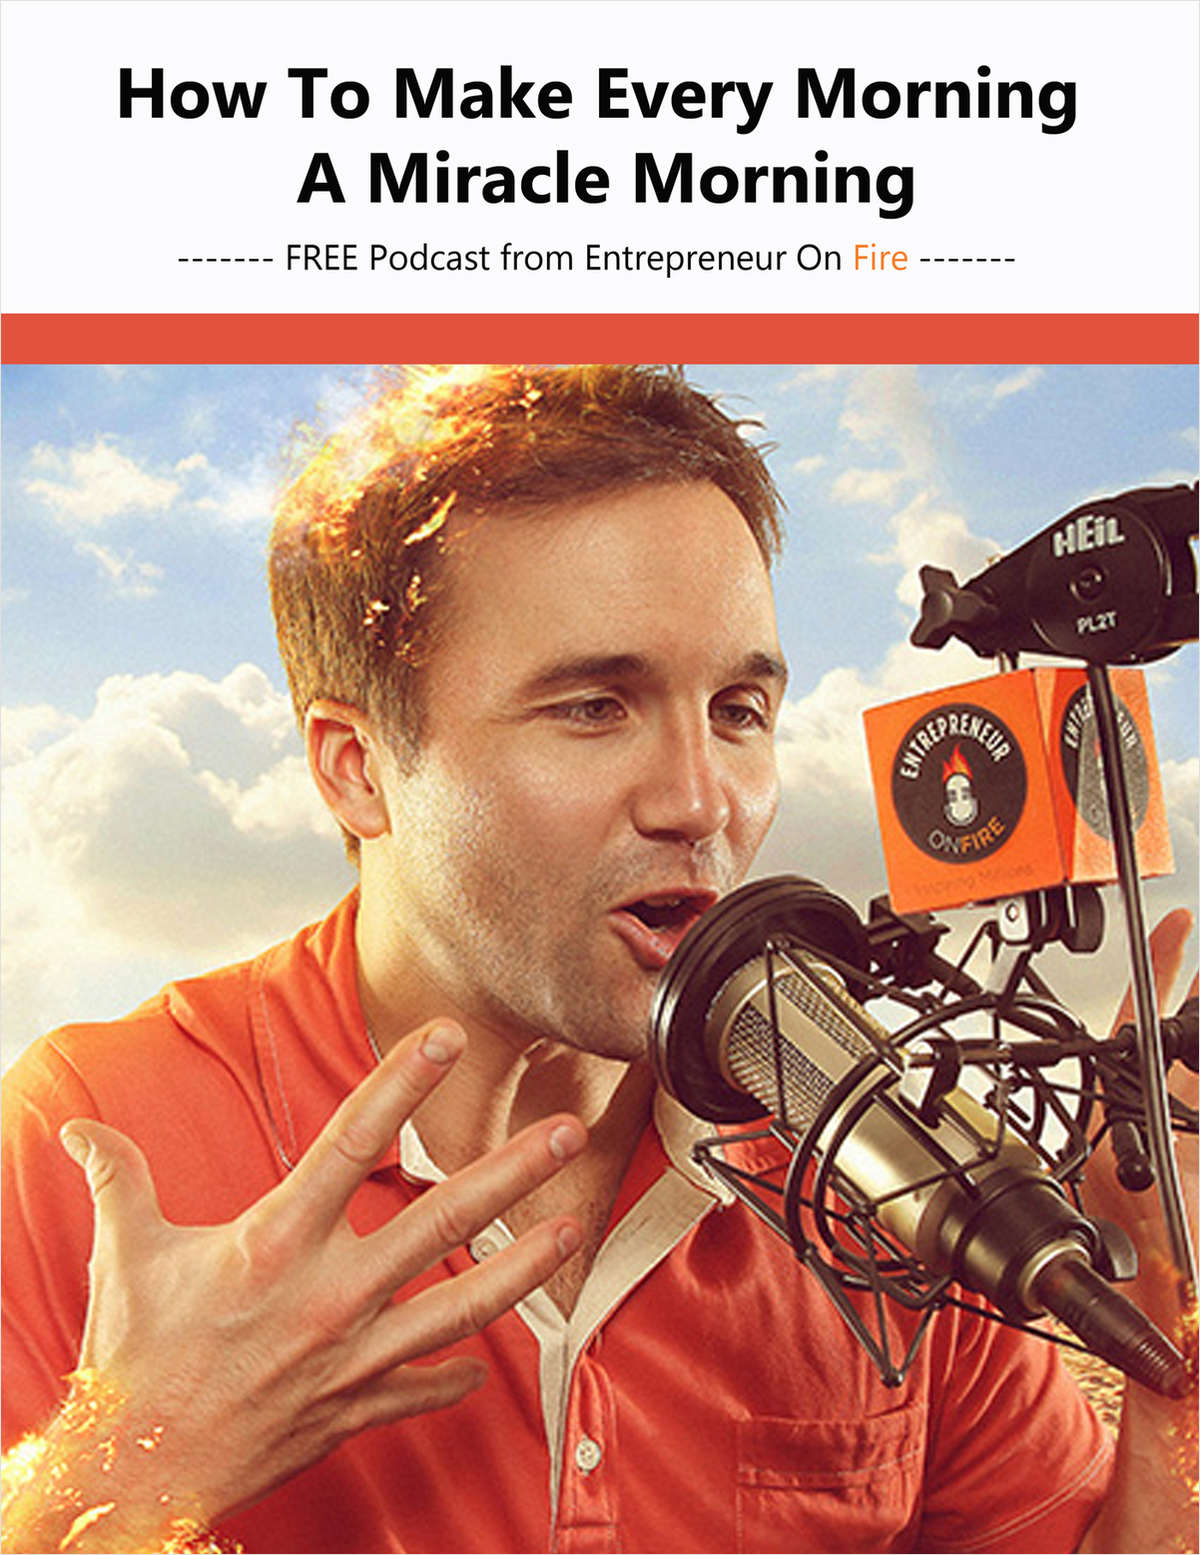 How To Make Every Morning A Miracle Morning